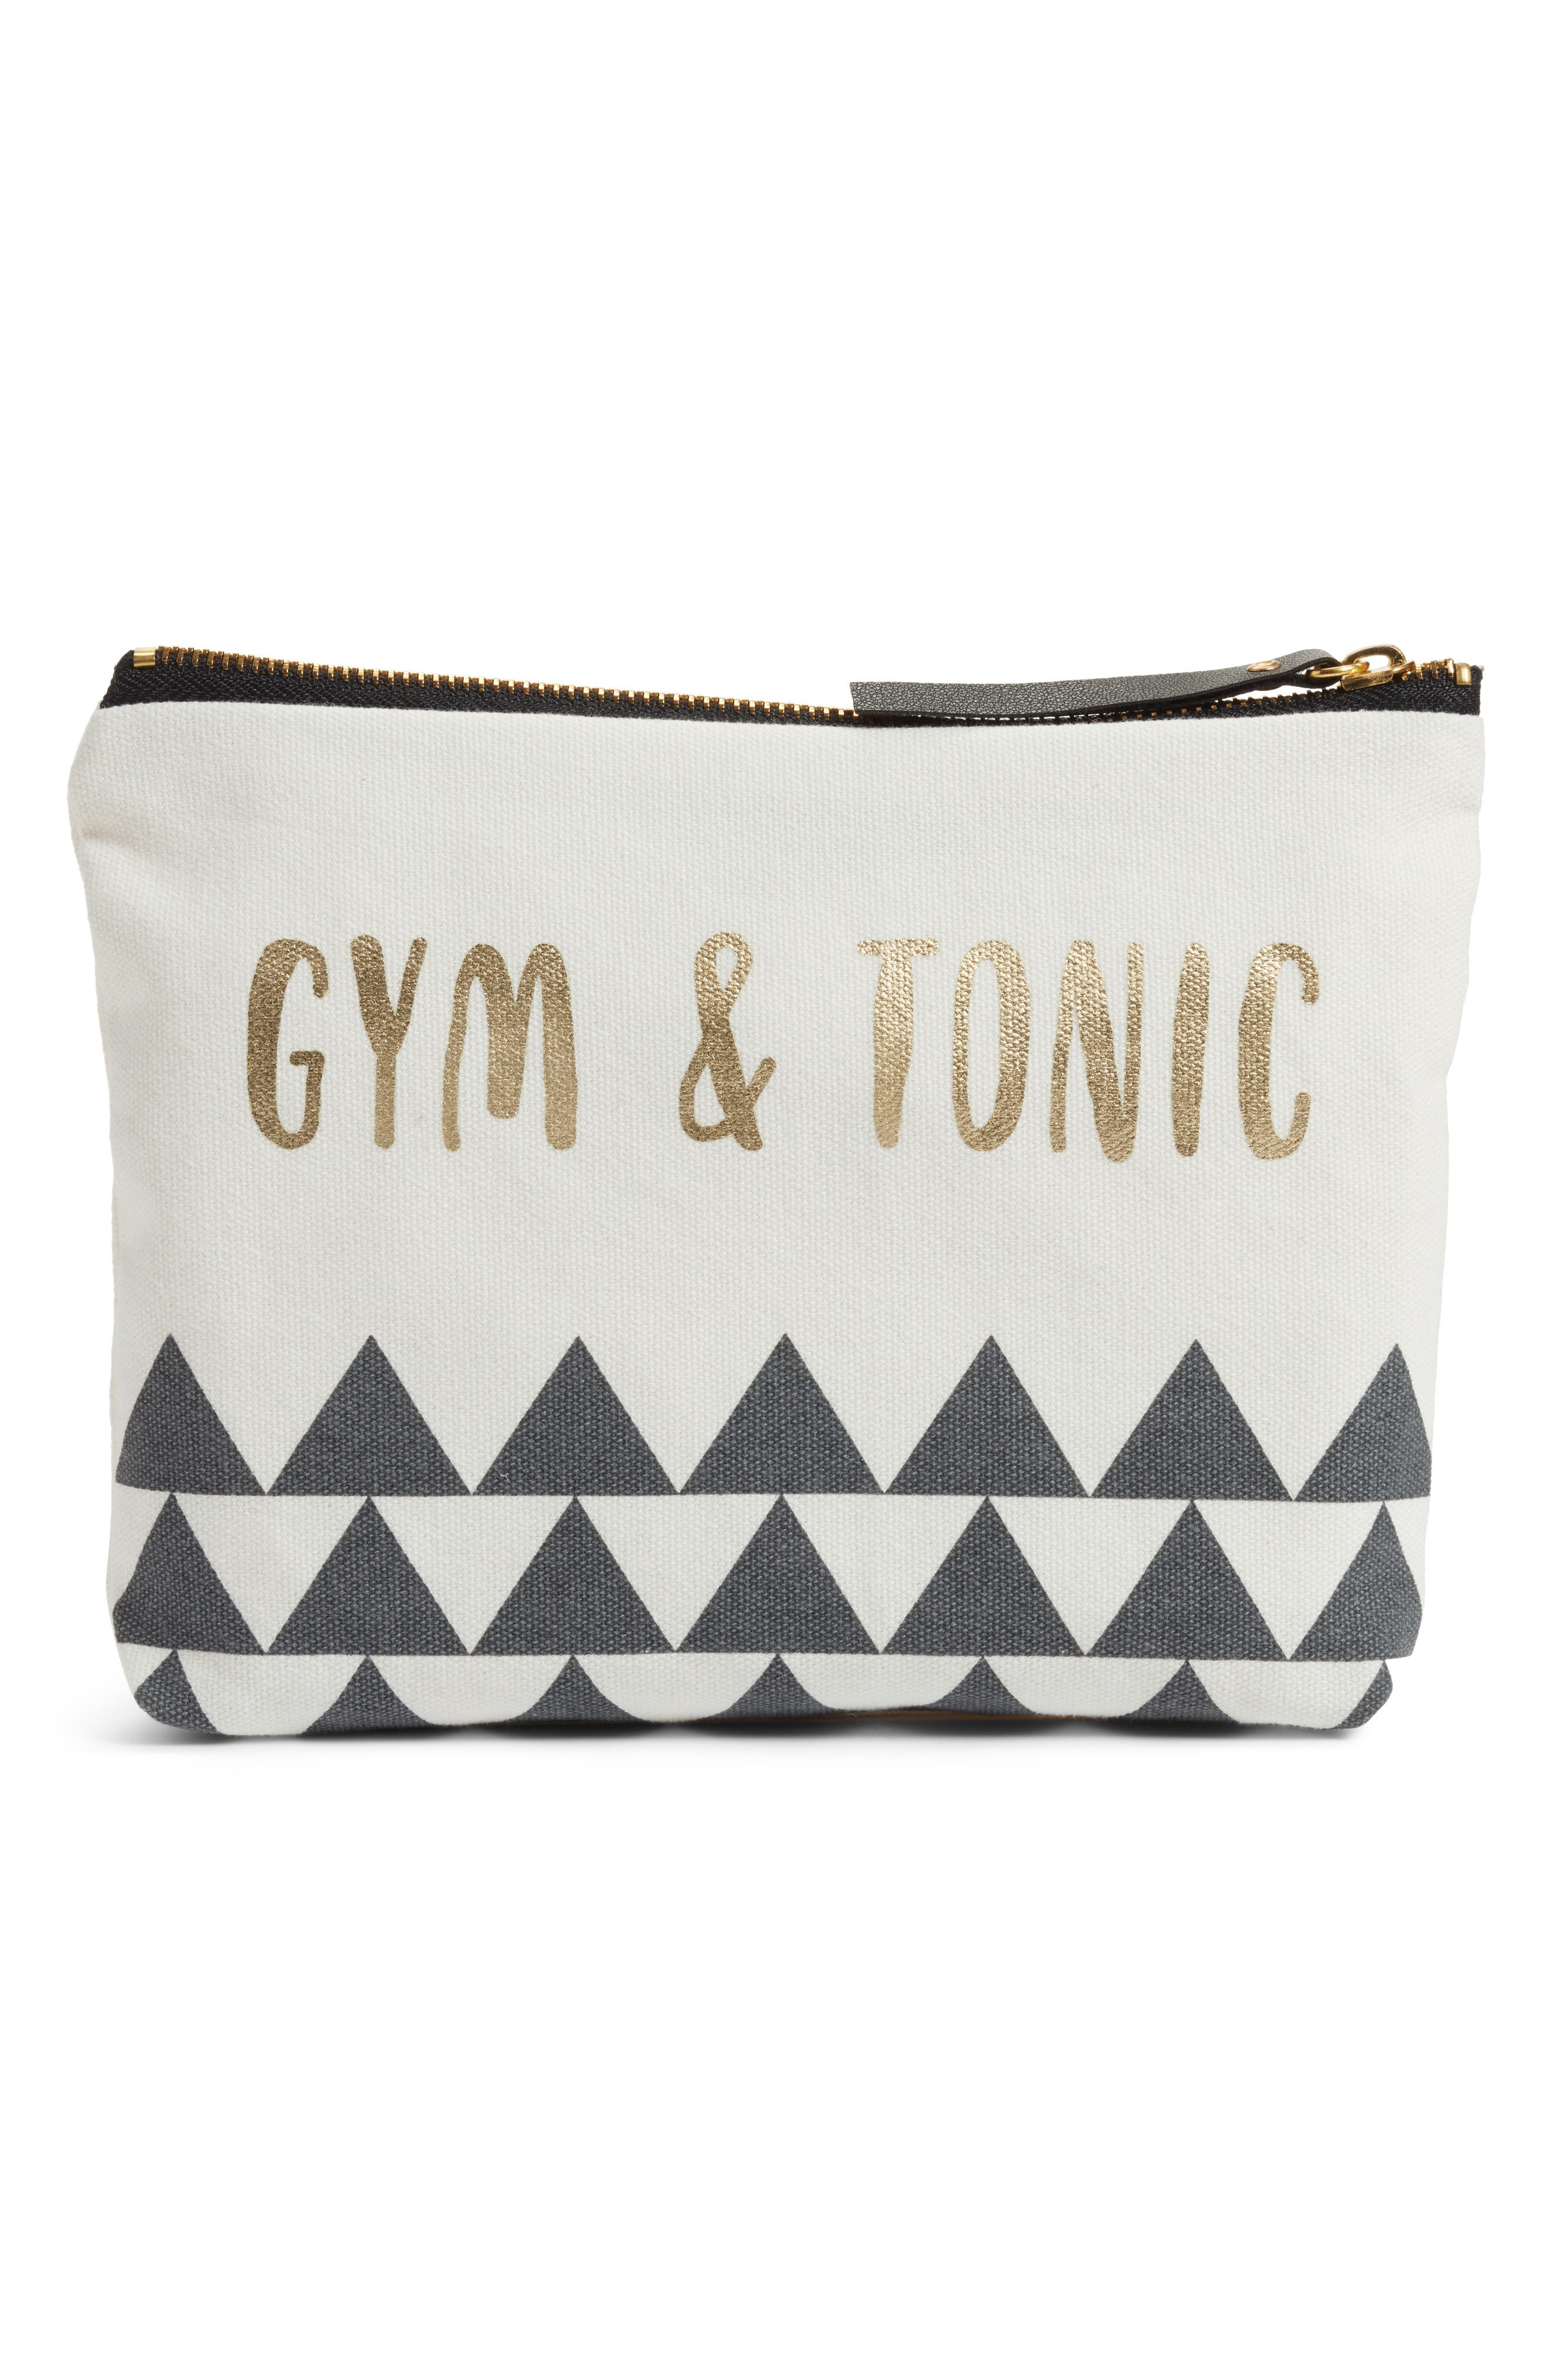 Alternate Image 1 Selected - Levtex Gym & Tonic Zip Pouch